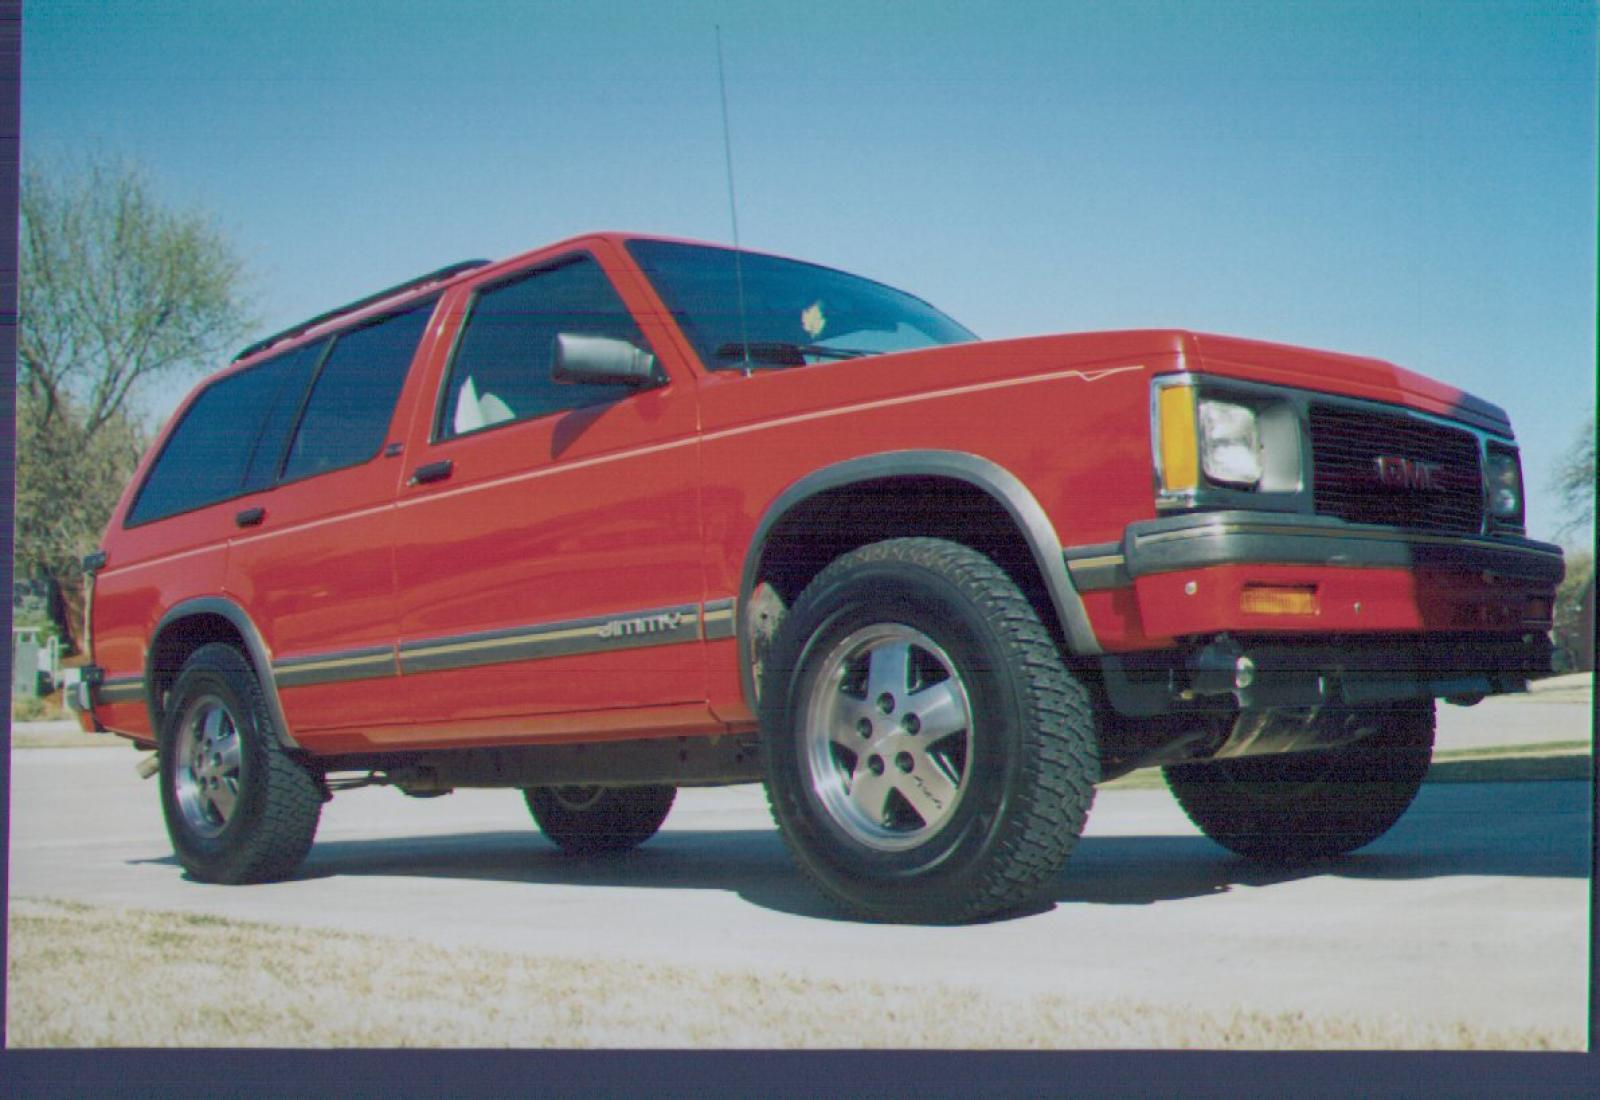 1994 Gmc Jimmy Information And Photos Neo Drive